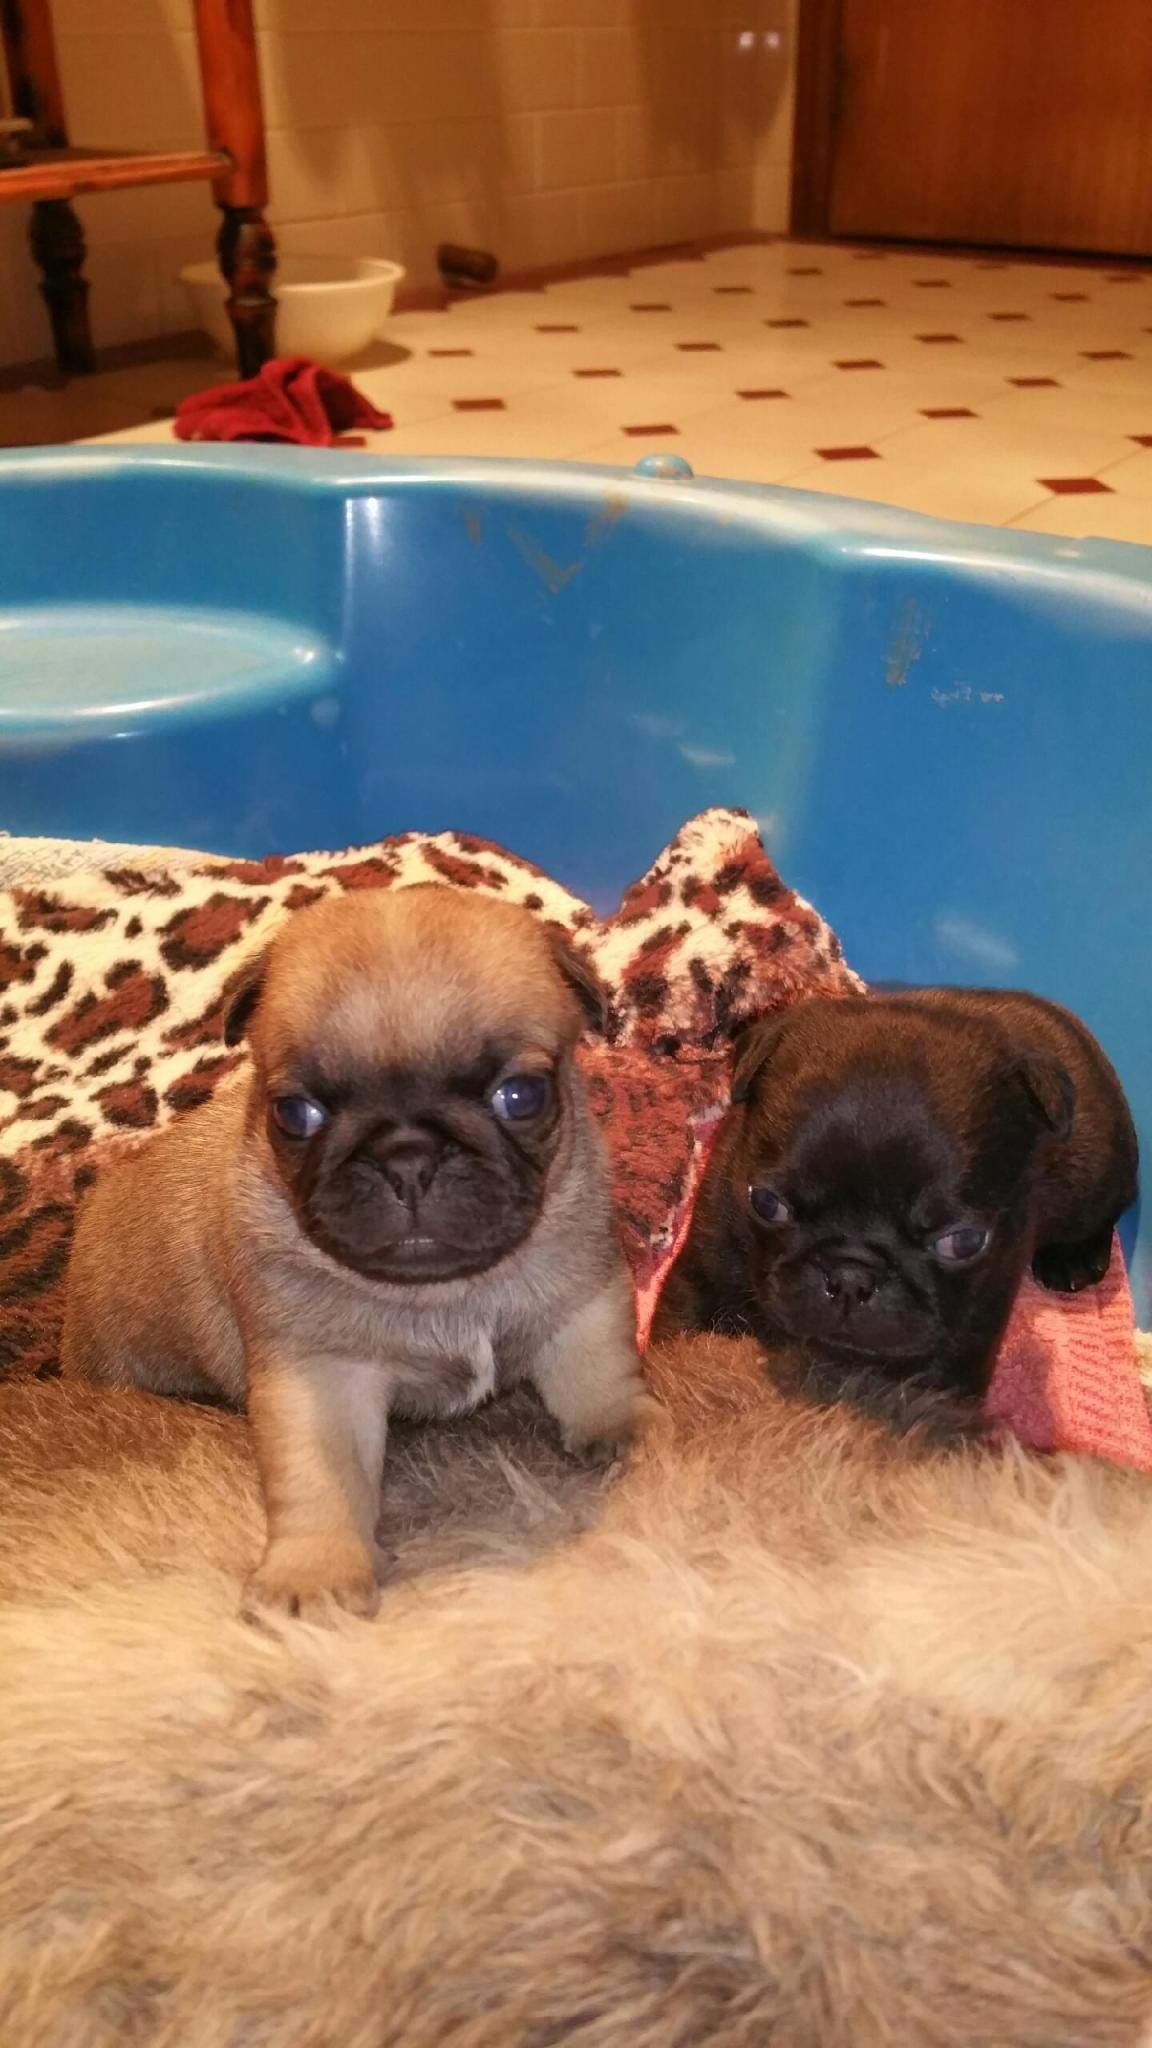 Pin By Lizette Santos On Ky Pugs Black Pug Puppies Pug Puppies